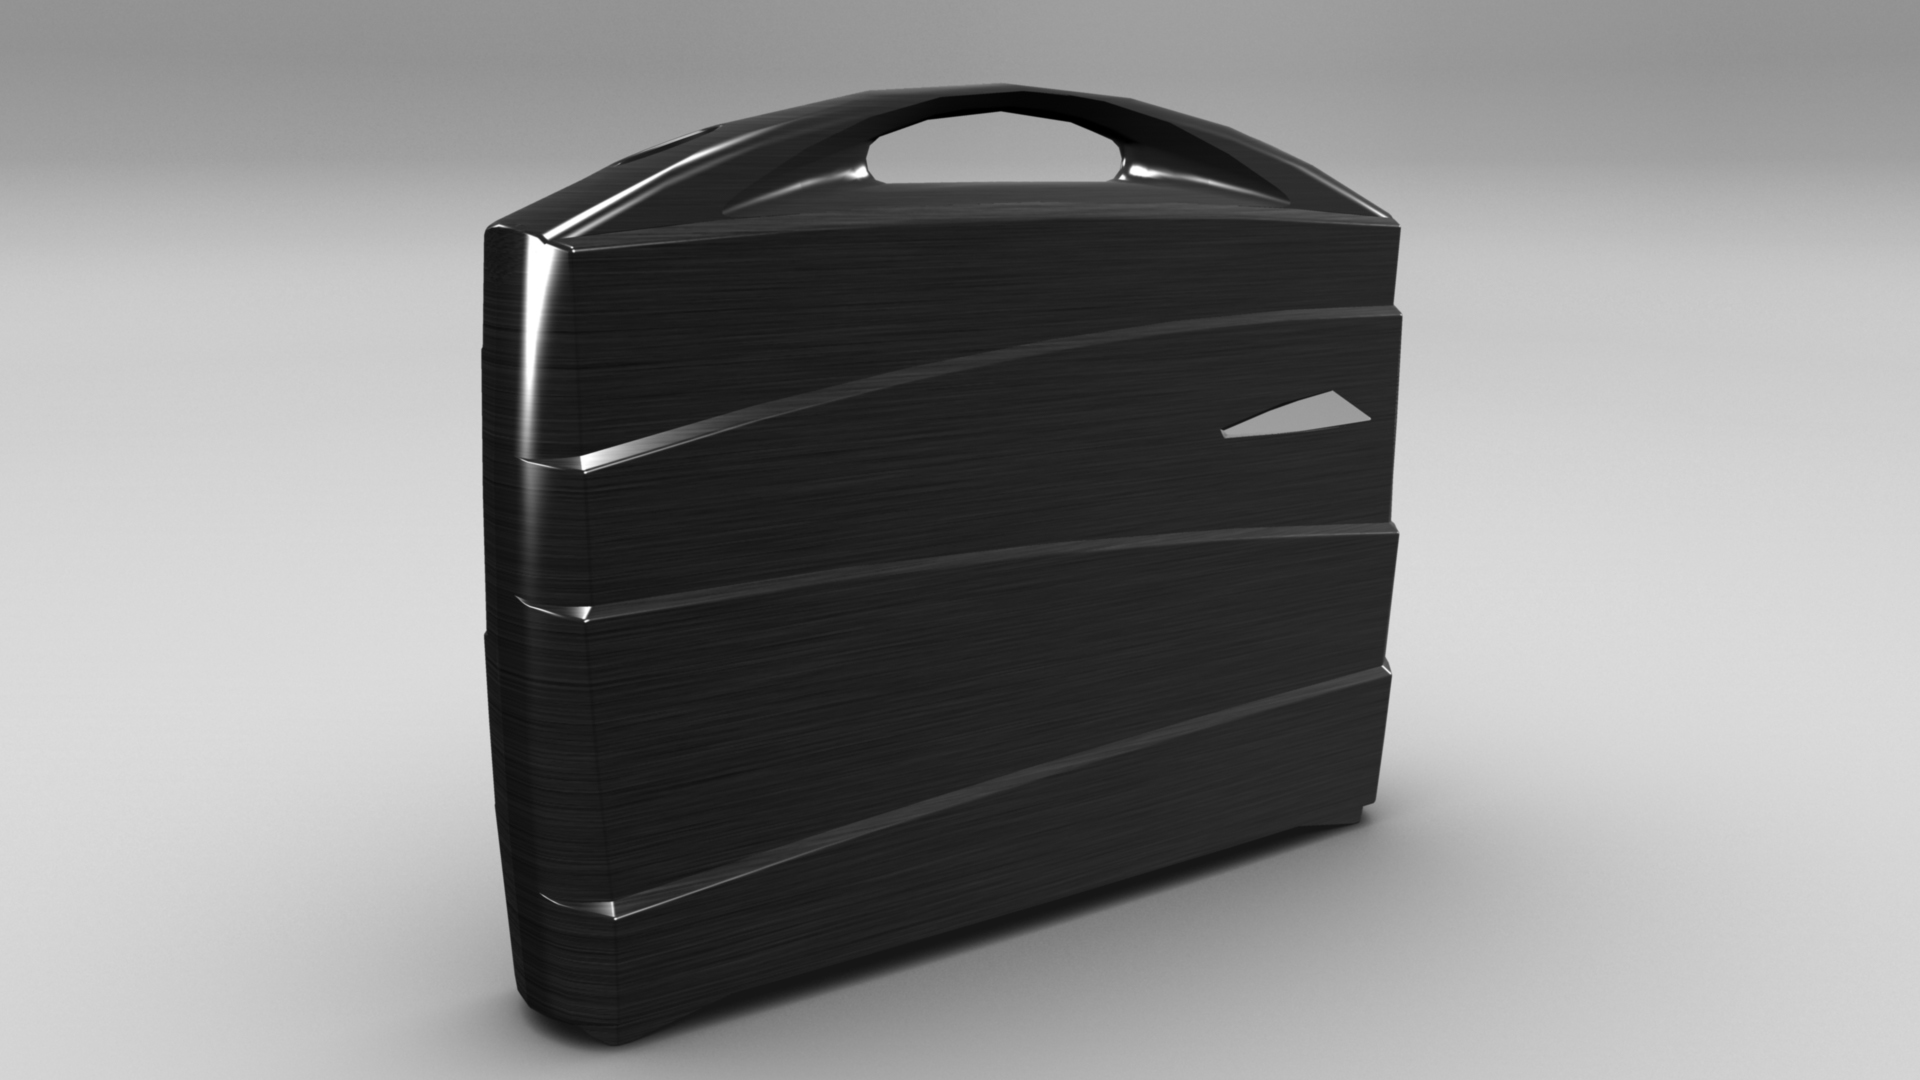 metal suitcase 3d model max fbx ma mb obj 286024